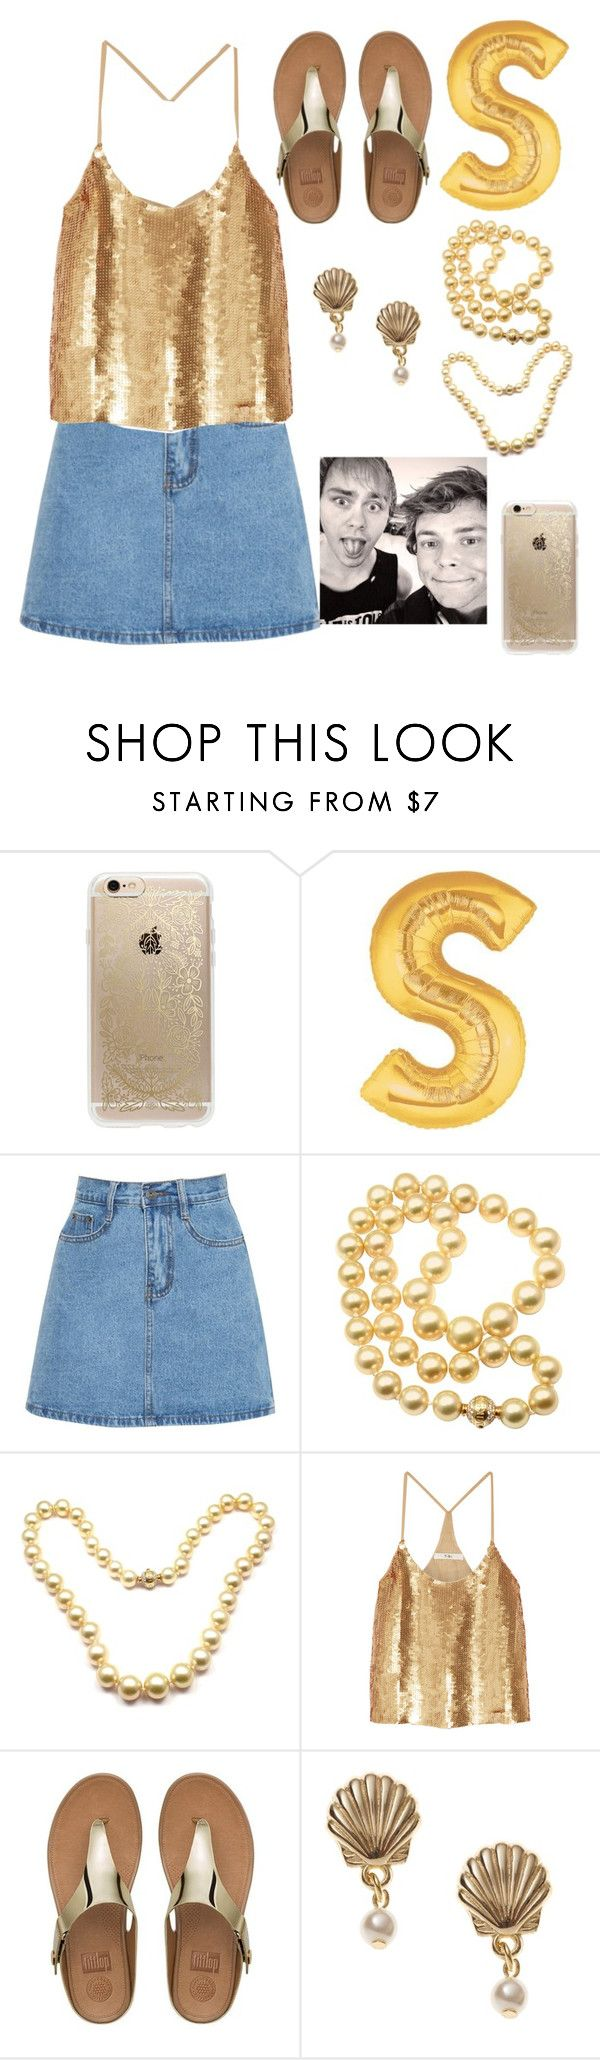 """""""bash"""" by gb041112 ❤ liked on Polyvore featuring Rifle Paper Co, Mikimoto, TIBI and FitFlop"""